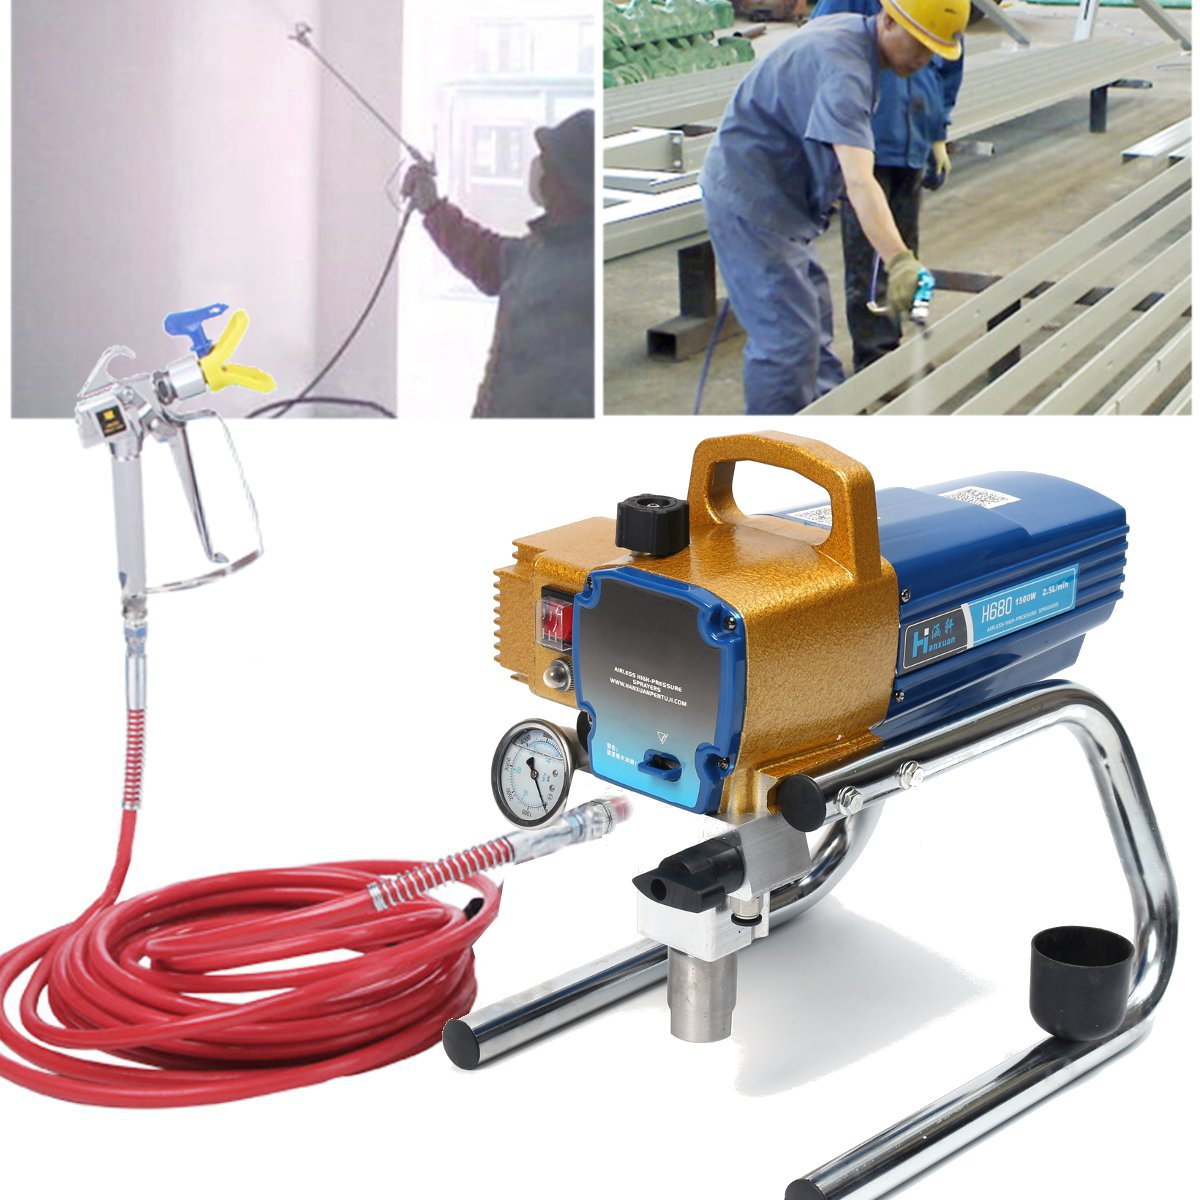 H680 High Pressure Airless Wall Paint Spray Gun Sprayer Machine 22MPA 1800W 220V